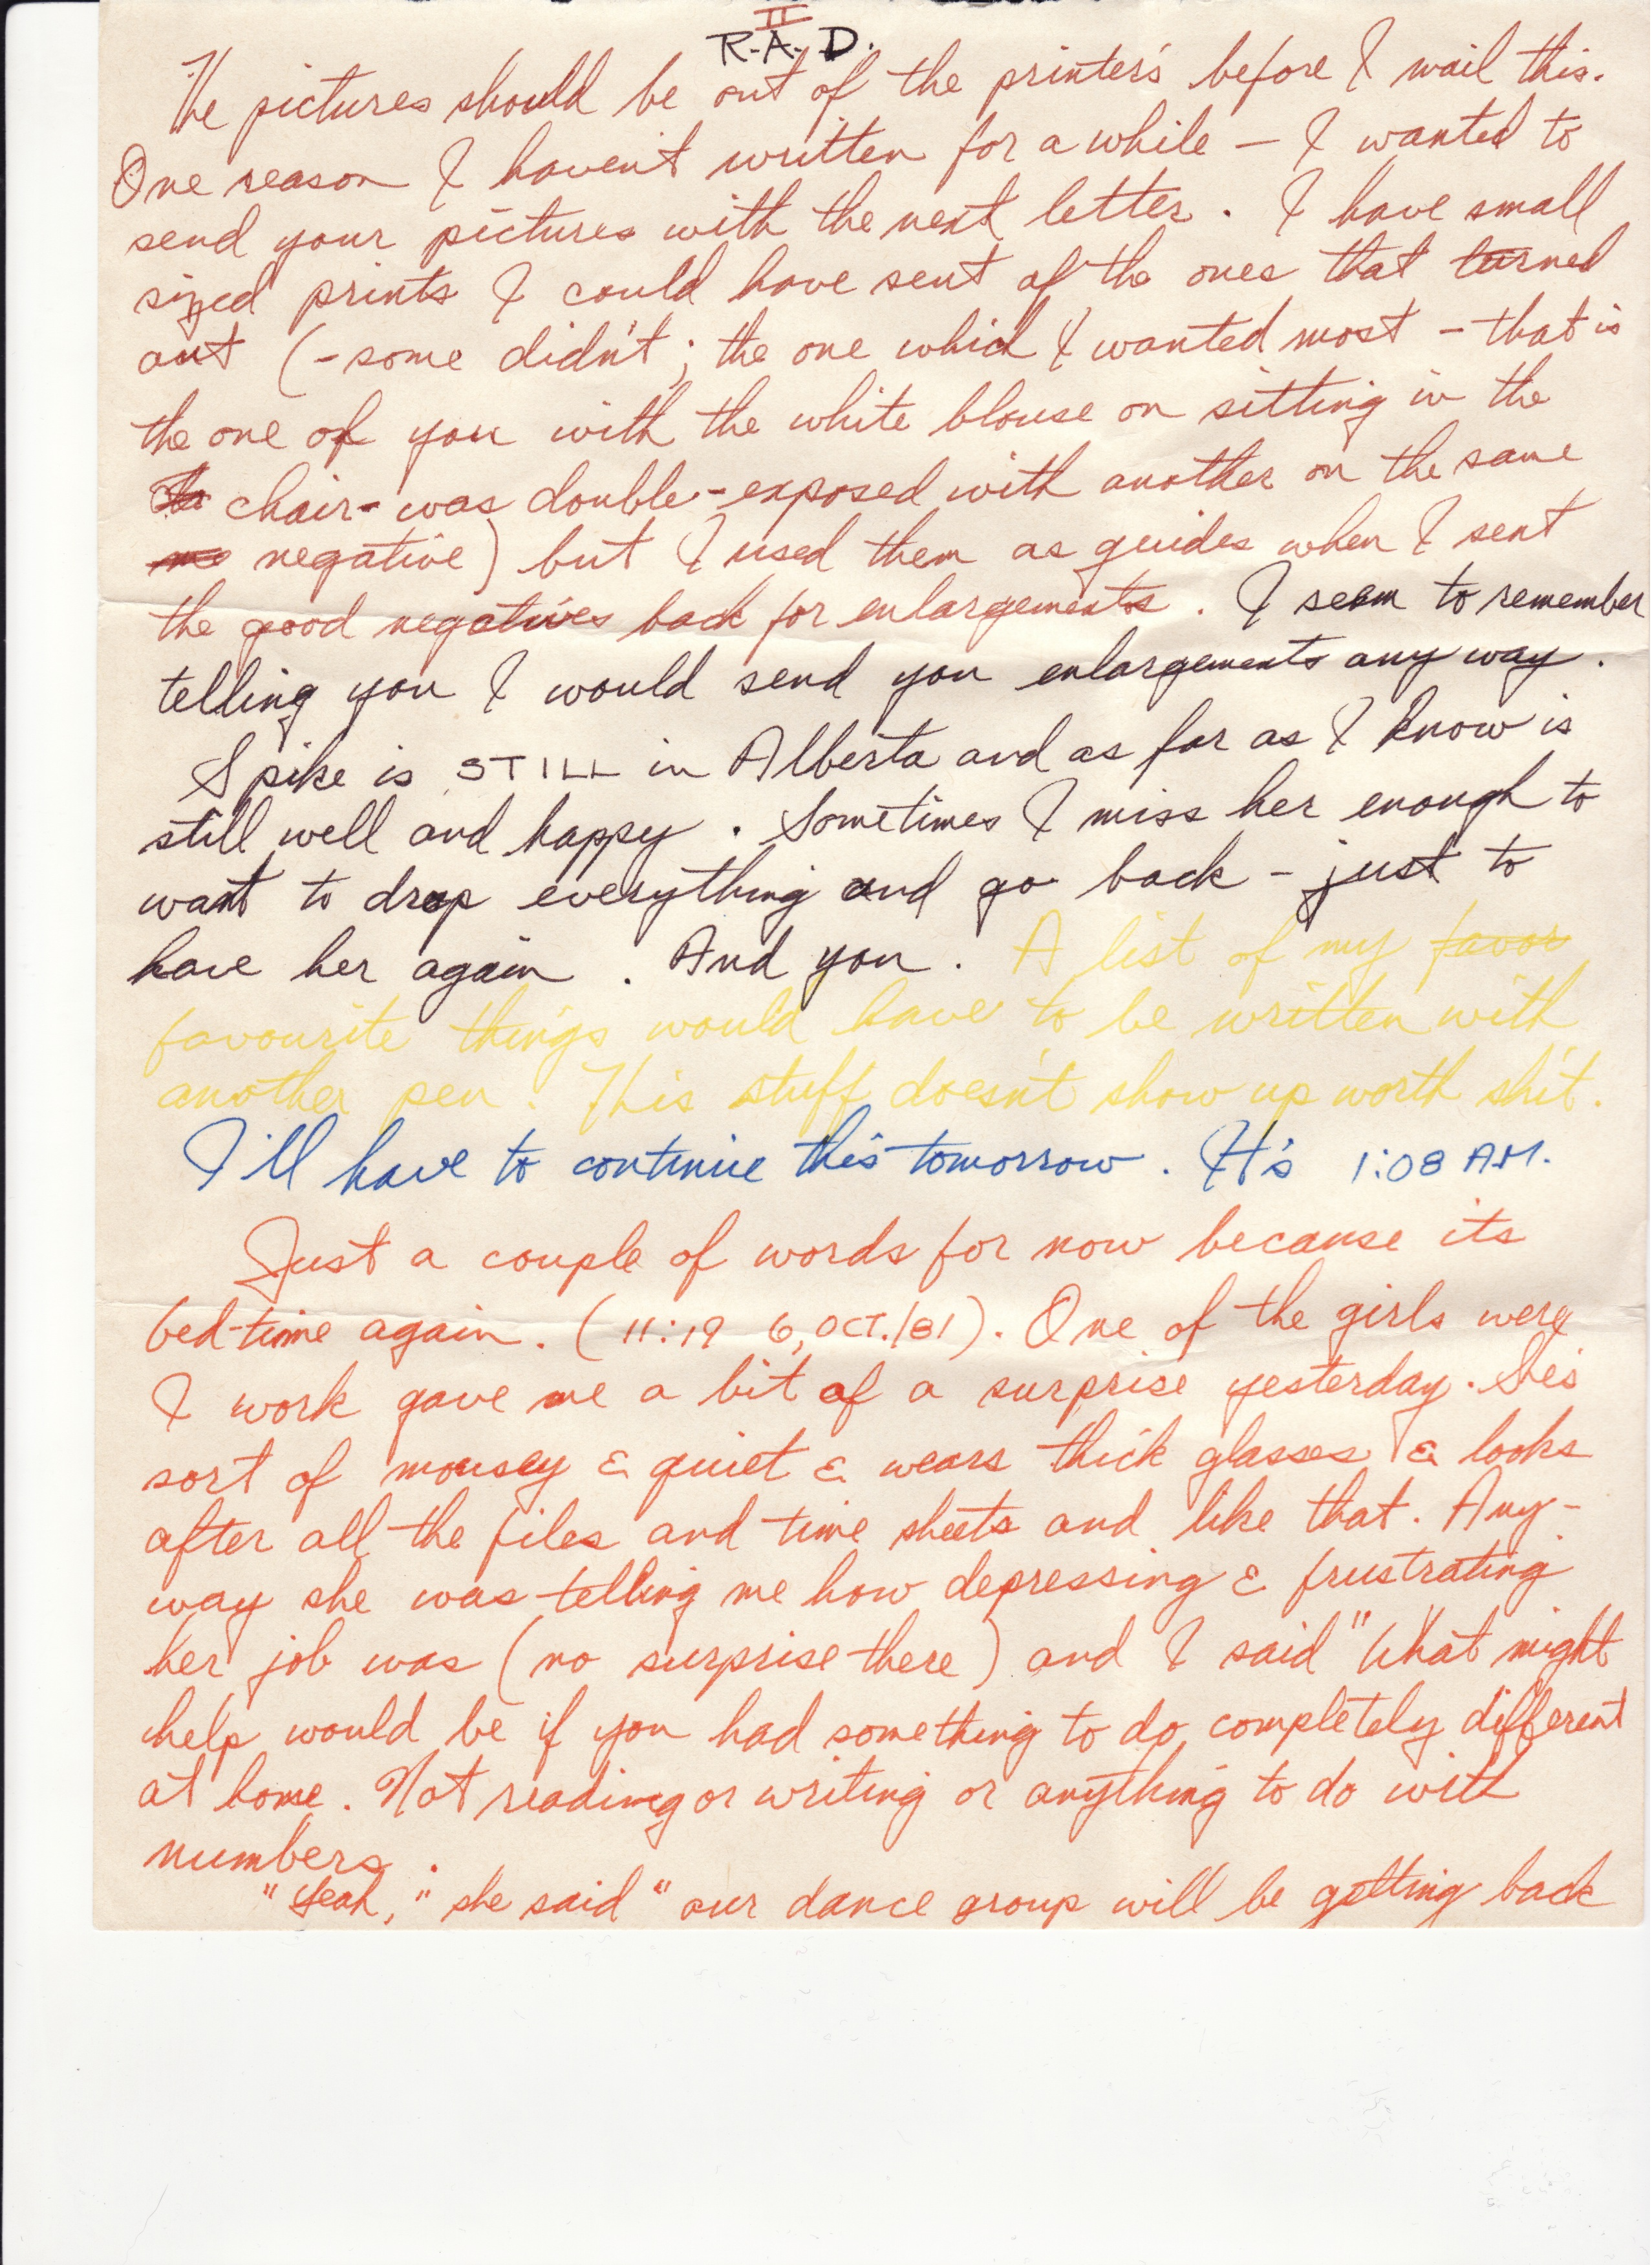 Read and destroy: One woman's letters with the man who abused her